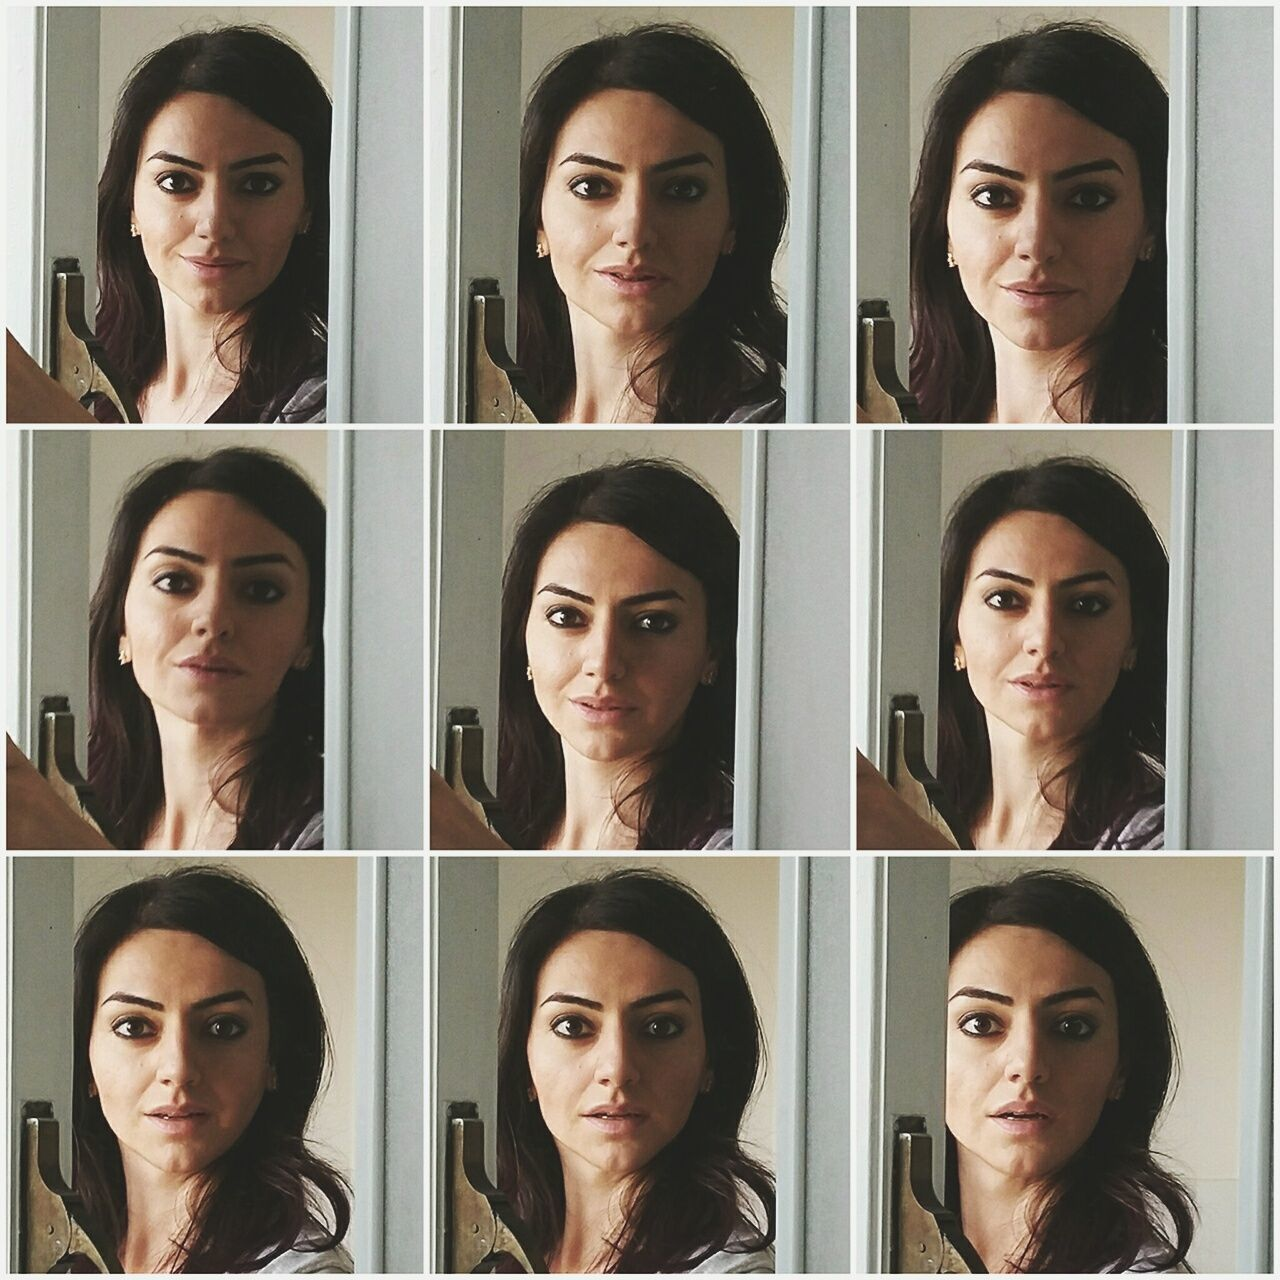 70s movie poster Portrait Serious Only Women Human Face Emotion Headshot Adults Only Human Body Part Individuality Variation Front View Looking At Camera One Woman Only Facial Expression Multiple Image Human Head Adult Contemplation Making A Face Mirror Picture Mirror Reflection Mirror Selfie Day